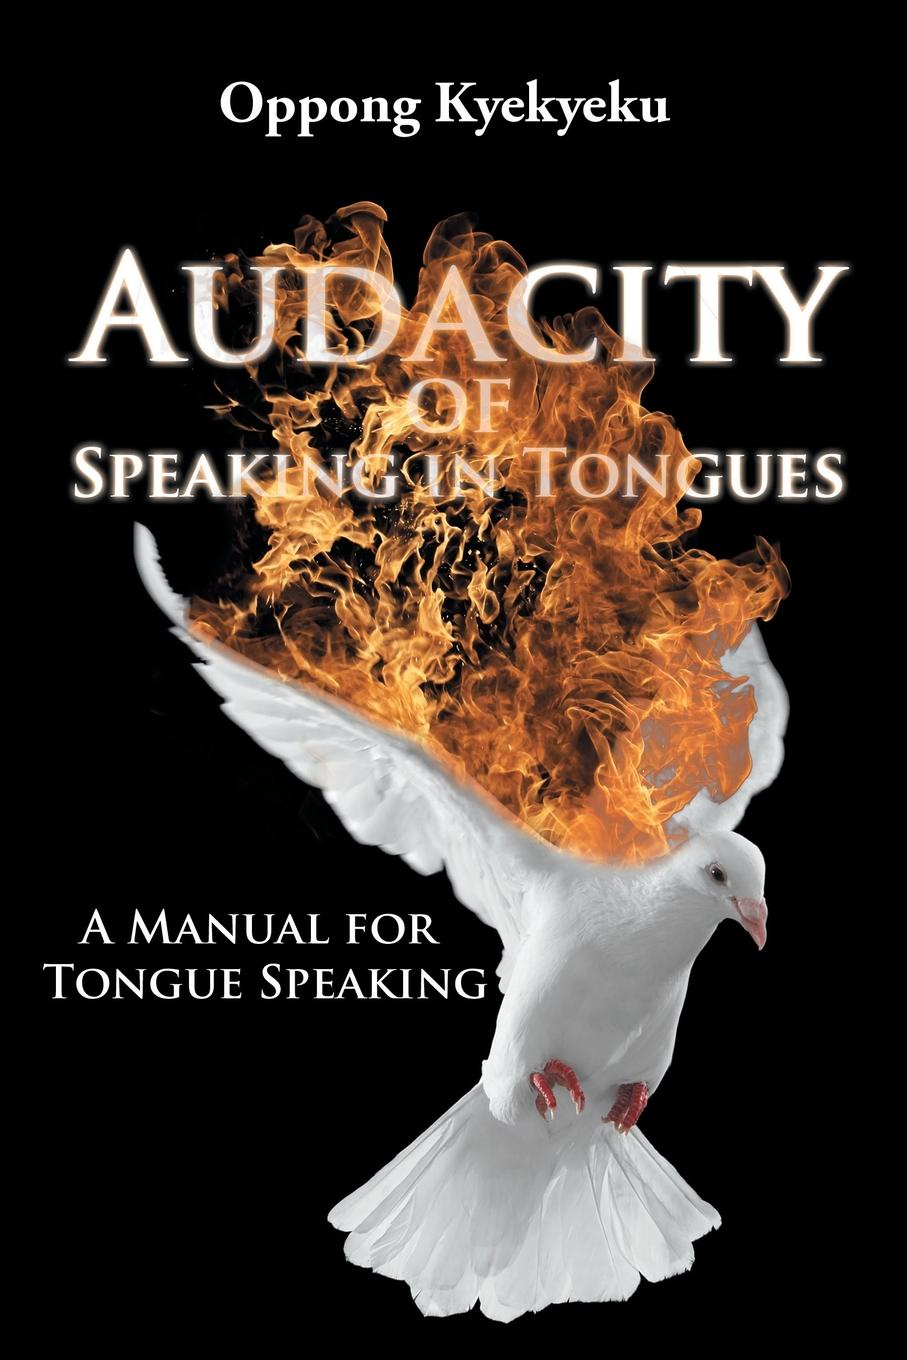 Oppong Kyekyeku Audacity of Speaking in Tongues. A Manual for Tongue Speaking tongues of serpents